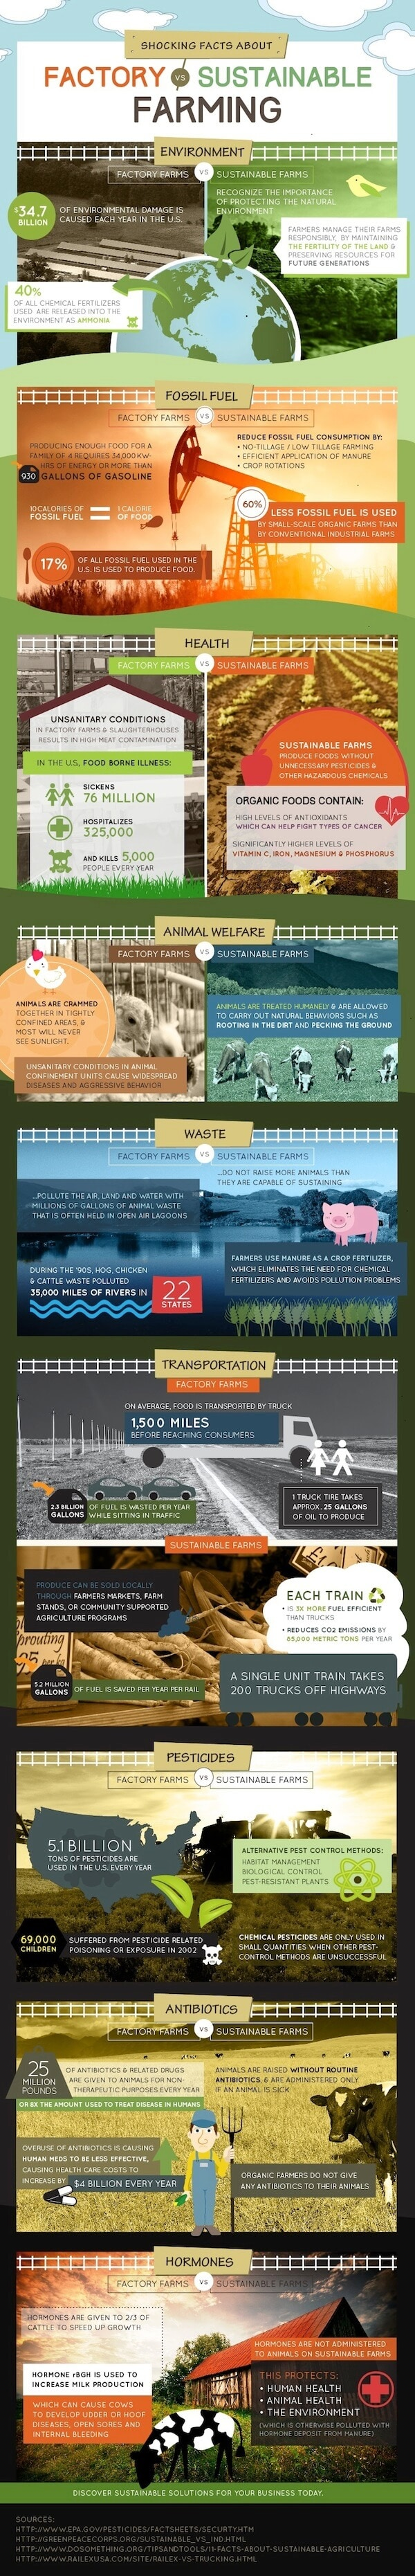 Factory farming infographic